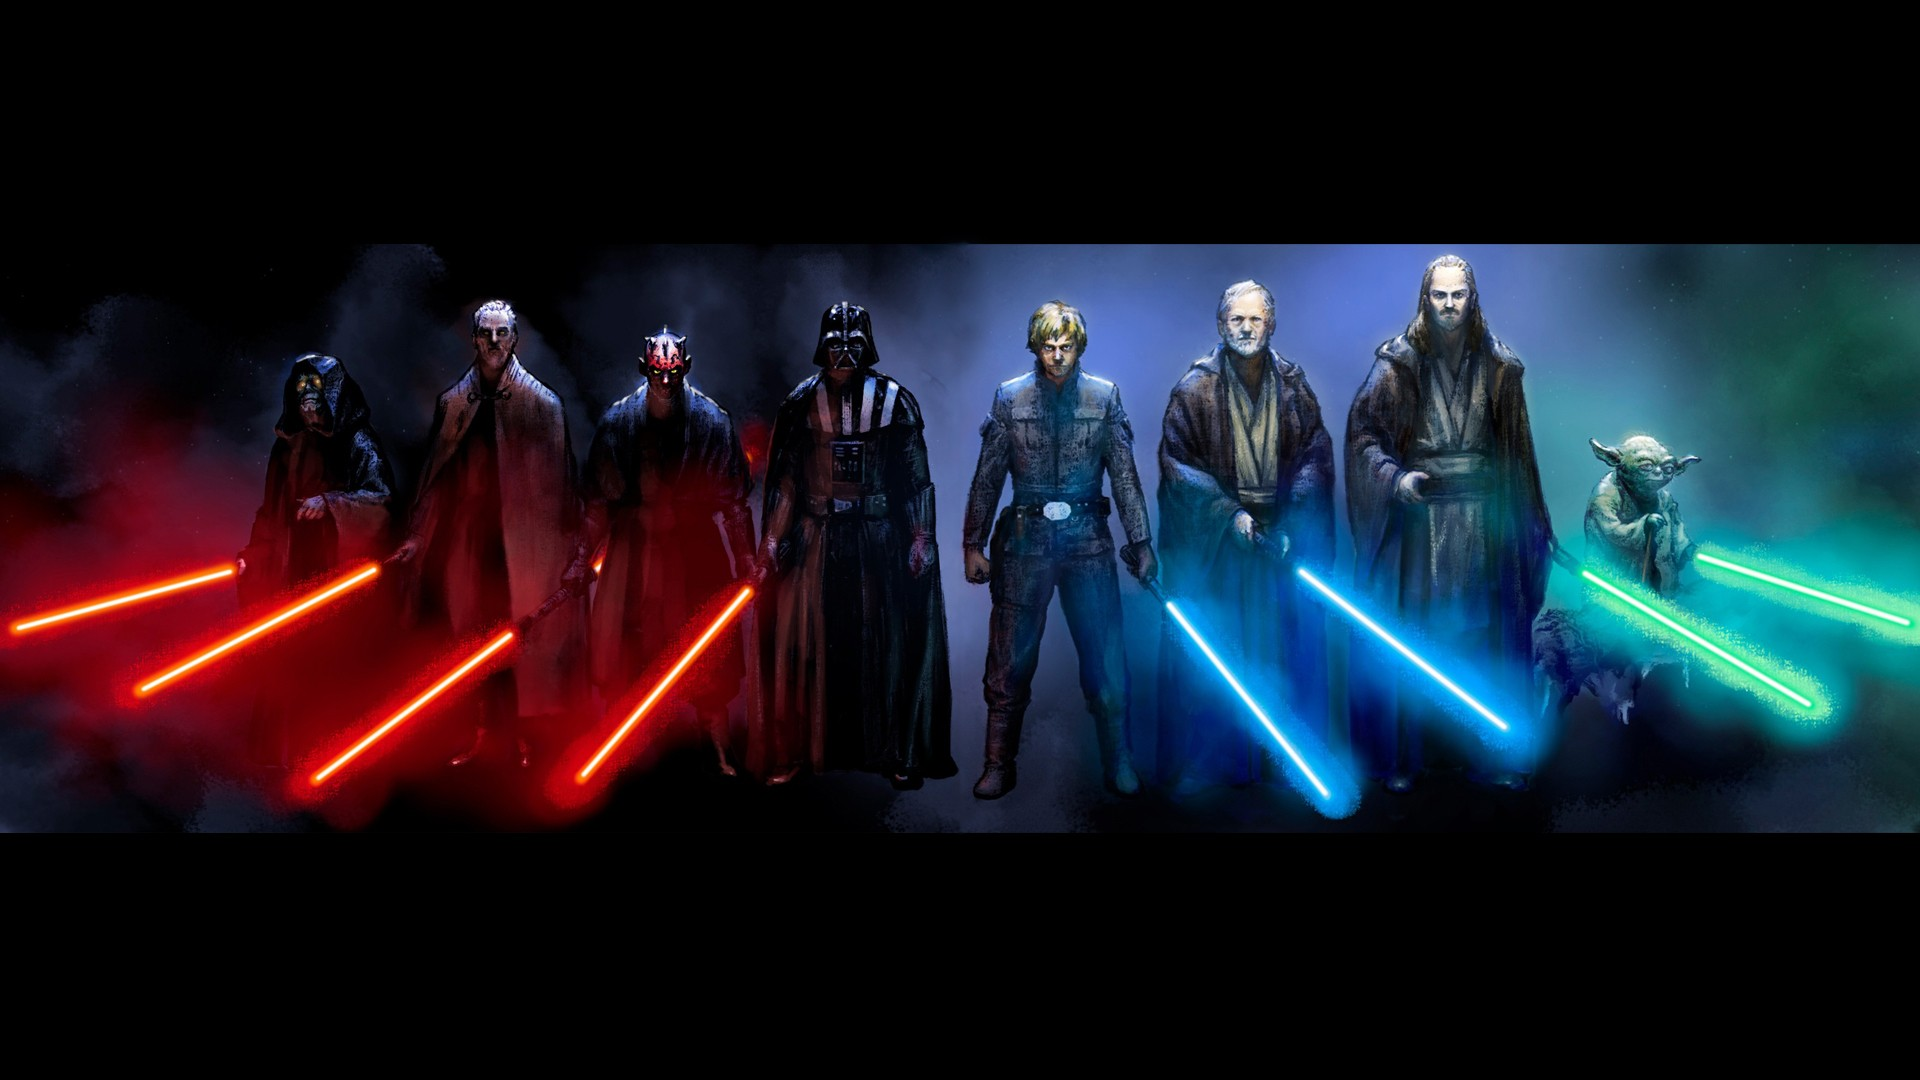 wallpapers free download lovely hd widescreen wallpapers of star wars 1920x1080